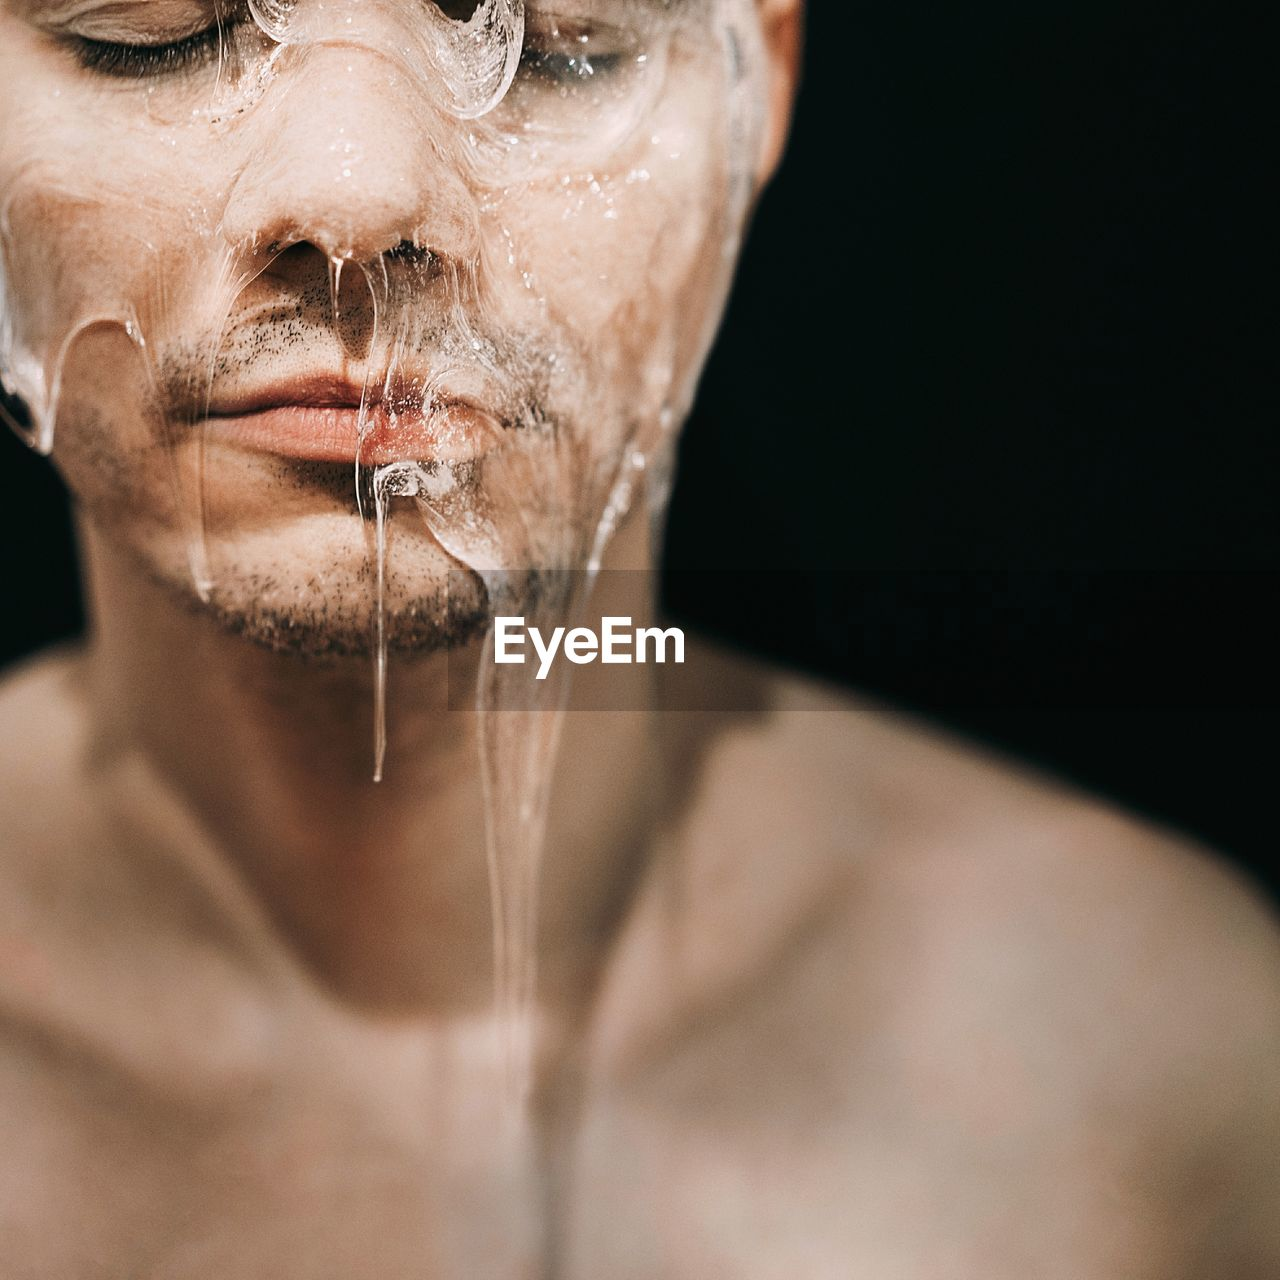 Close-Up Of Shirtless Man With Ice On Face Against Black Background